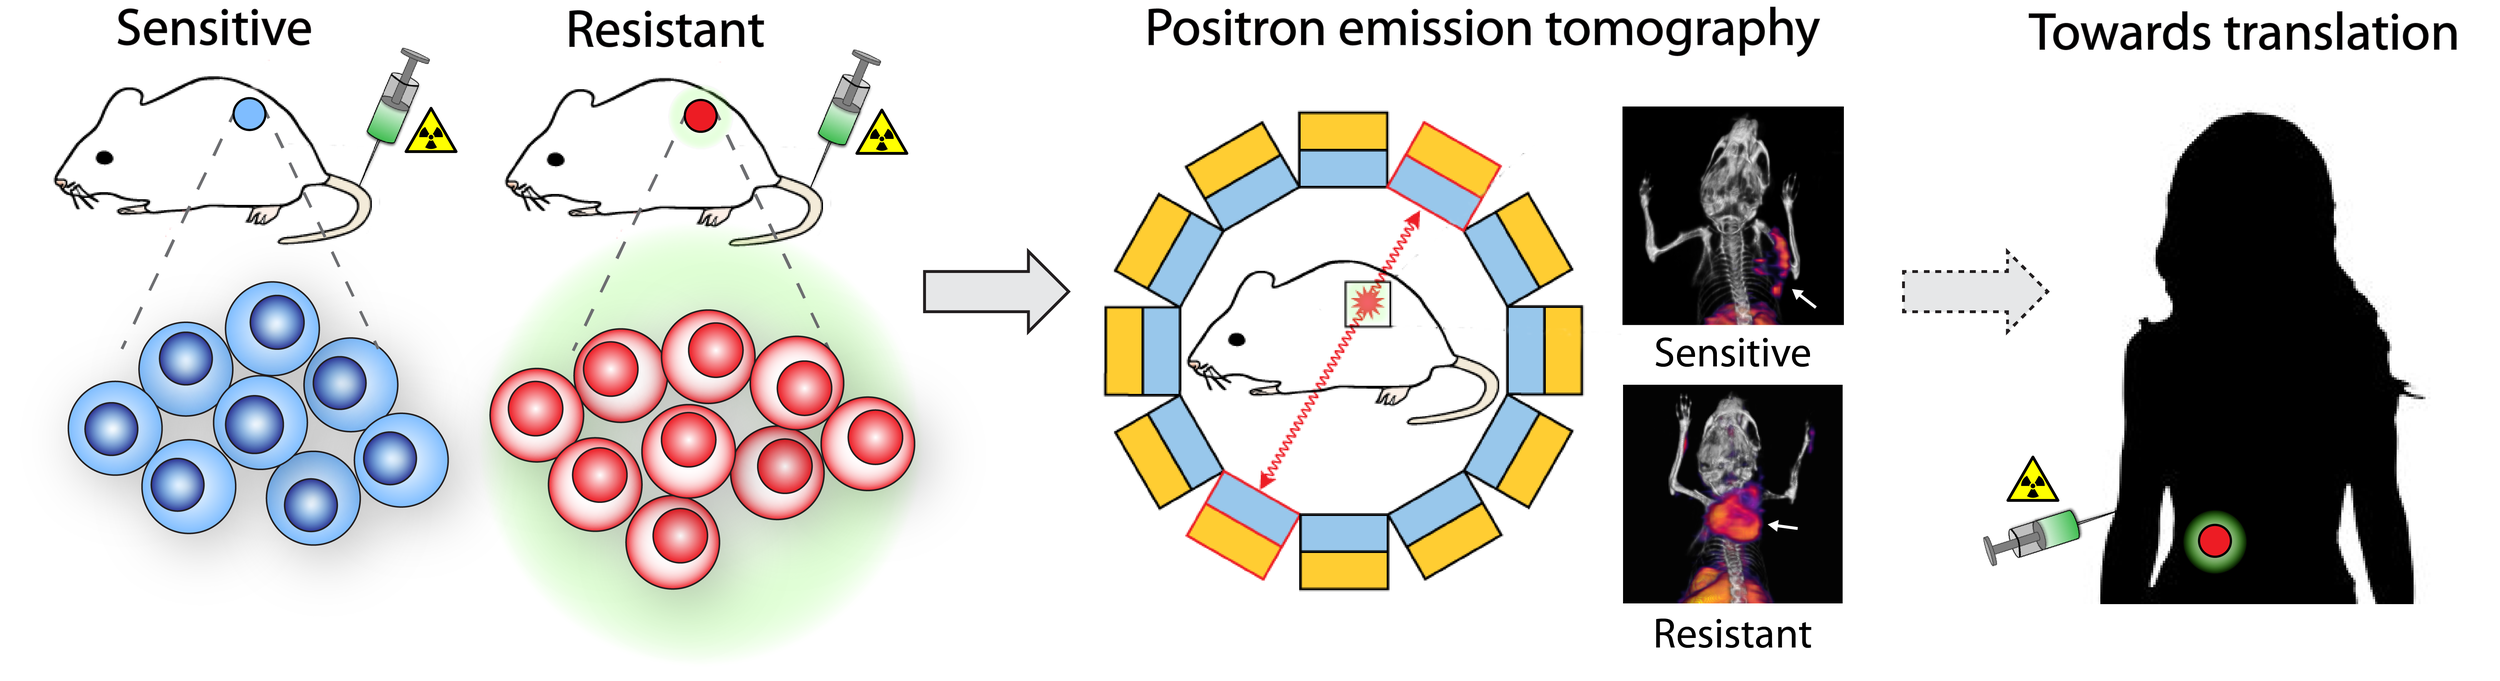 Strategy for the noninvasive detection of tumour resistance to therapy using radionuclide imaging. Figure adapted from Nguyen, Q.D. & Aboagye, E.O. Integr Biol 2:483-95